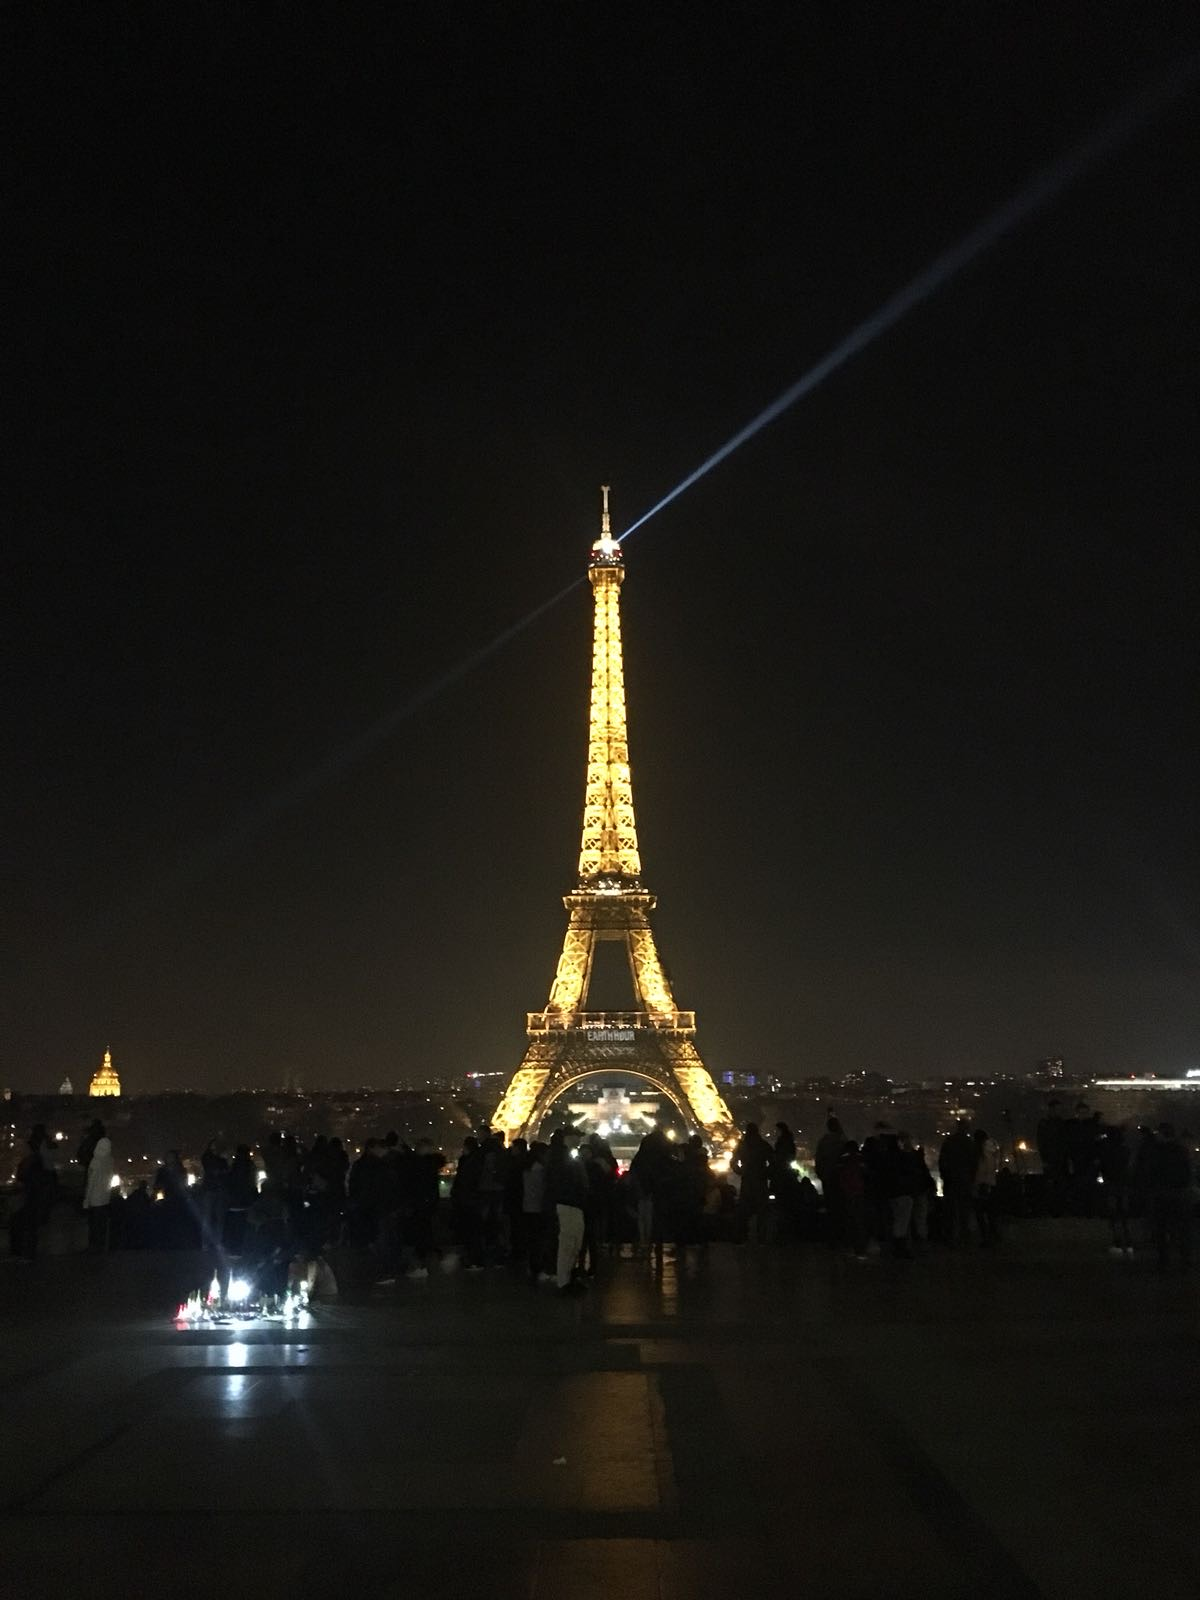 The Eiffel Tower before lights out